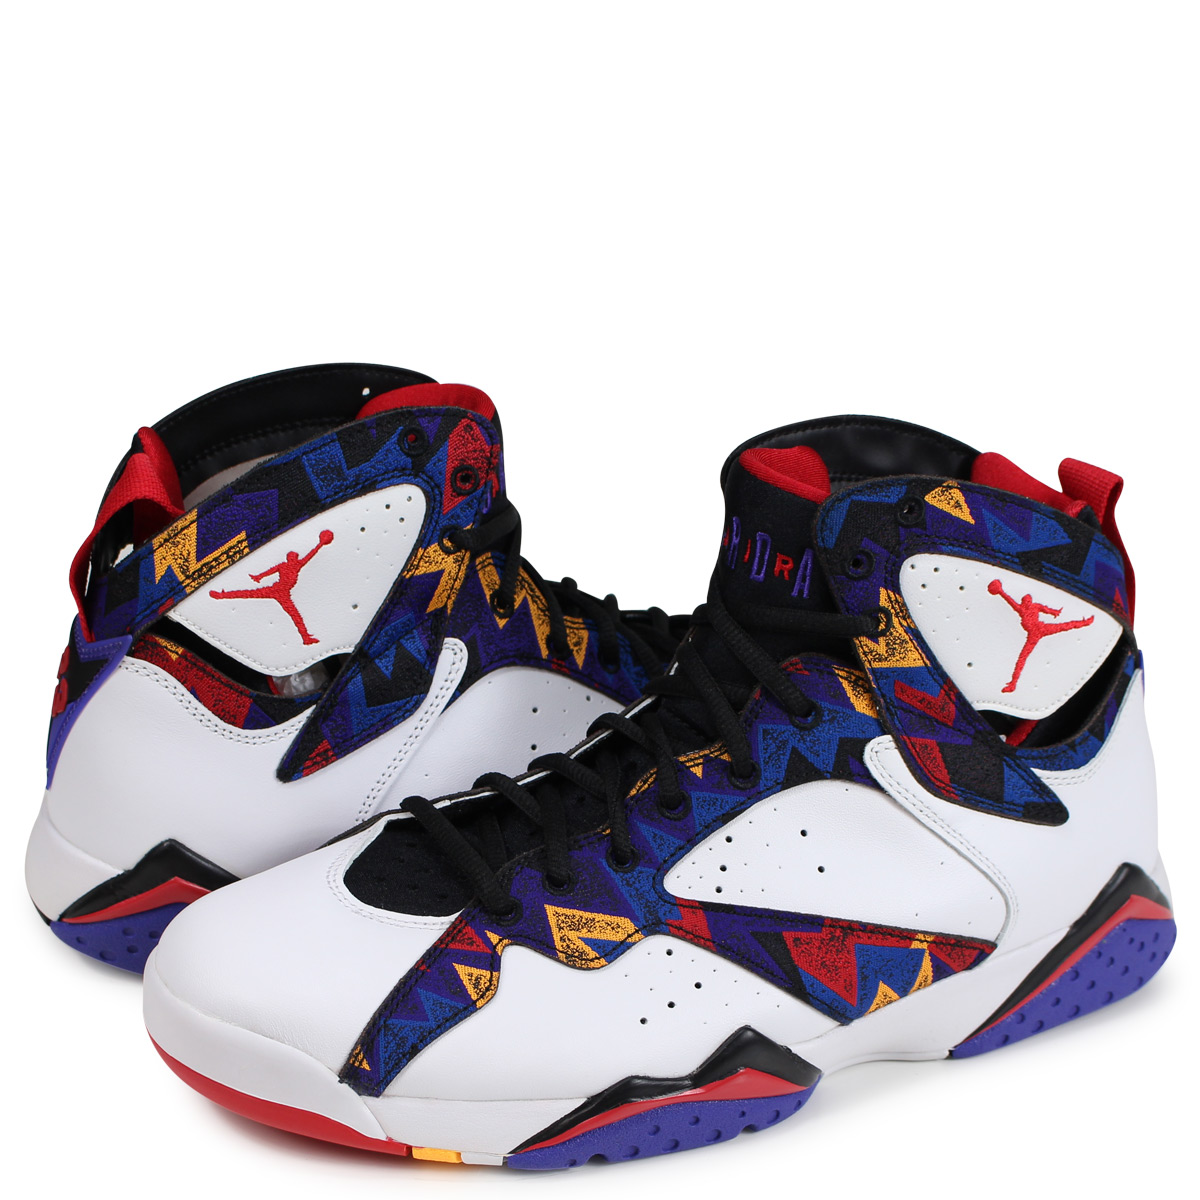 new styles 015d2 f9a36 Nike NIKE Air Jordan 7 nostalgic sneakers men AIR JORDAN 7 RETRO SWEATER  white 304,775- ...